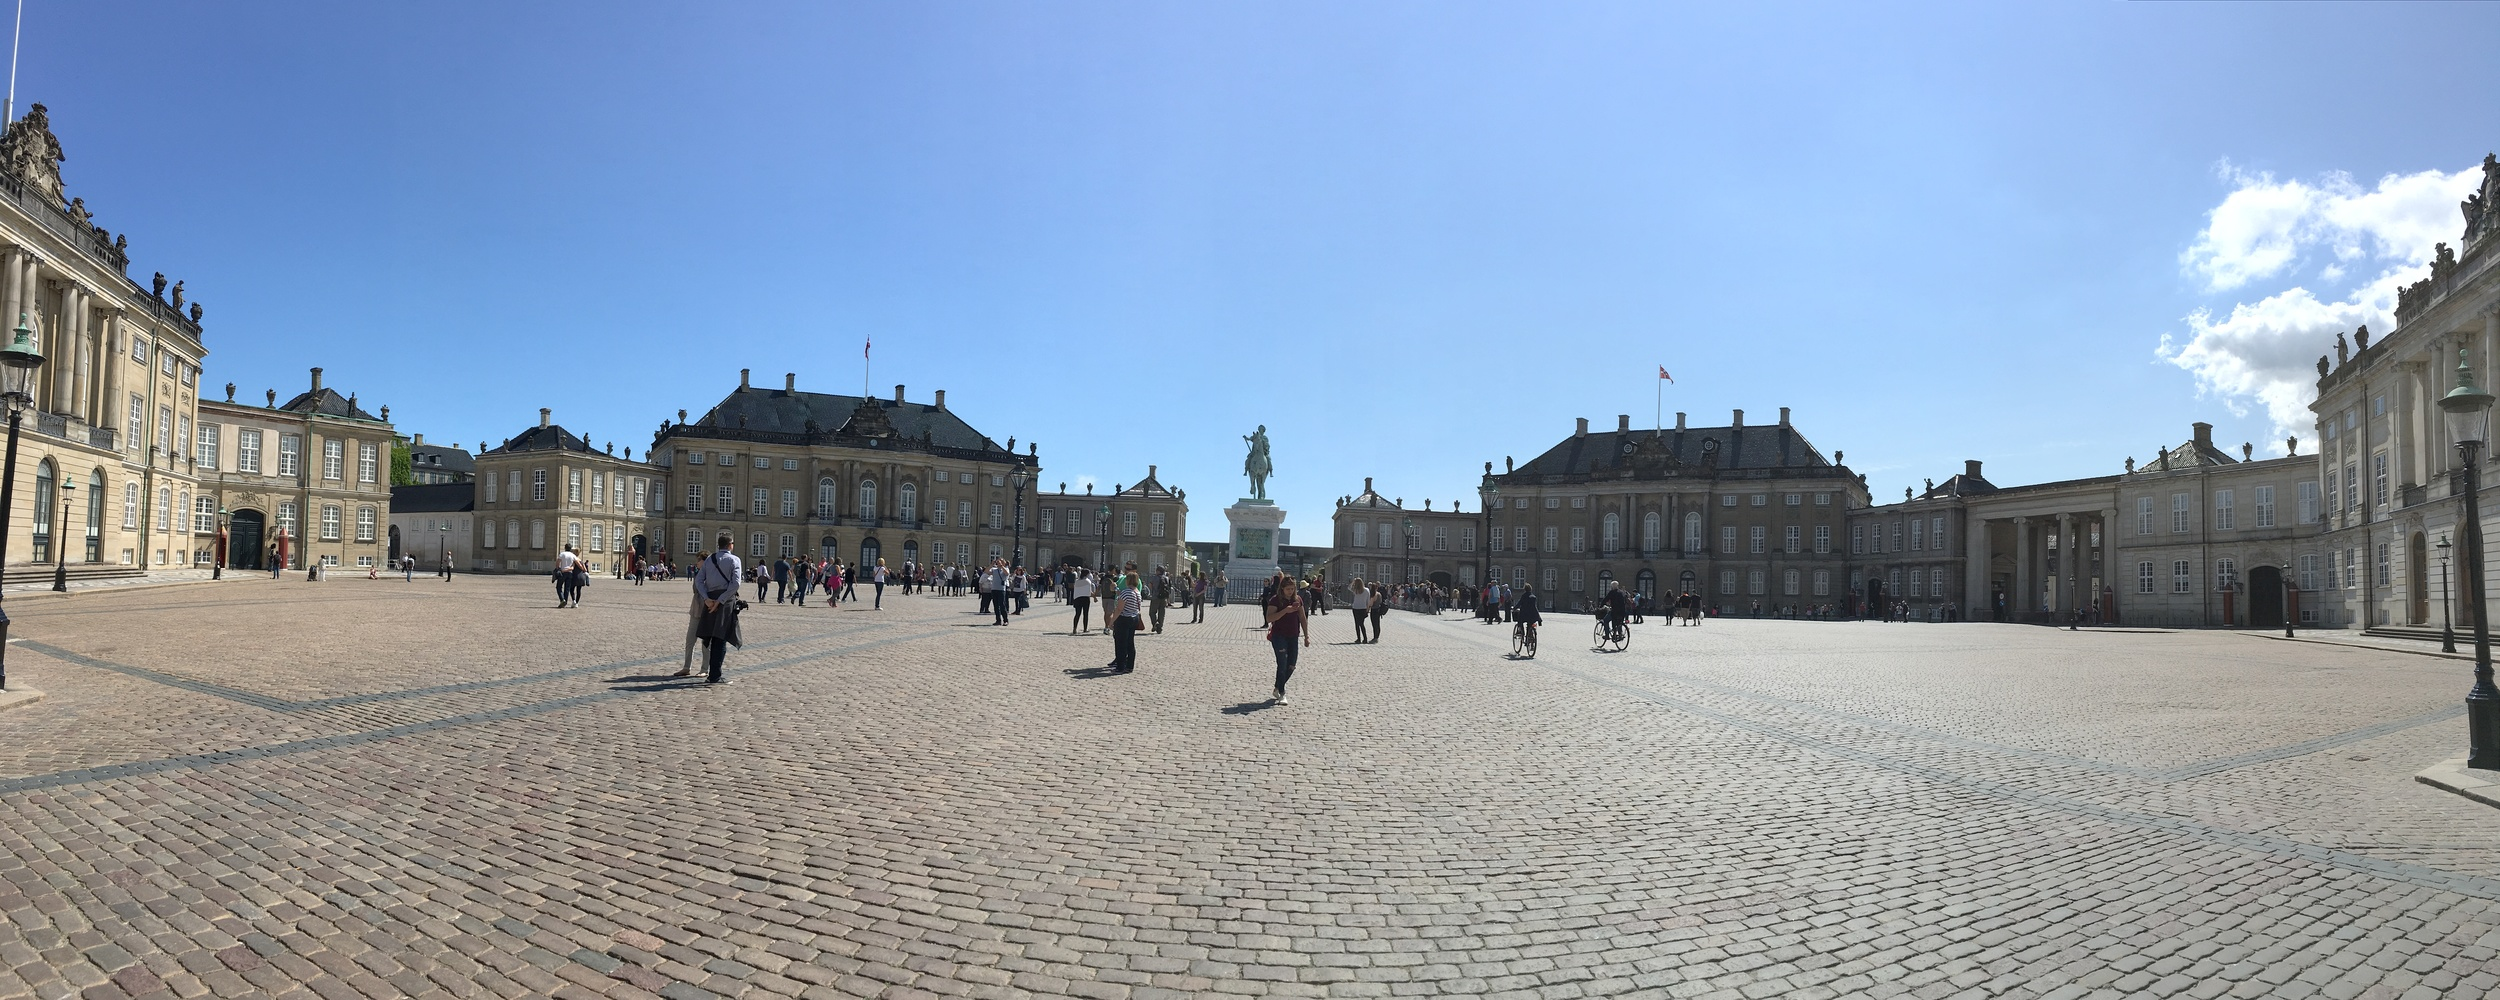 Amalienborg Palace, where the Royal Family lives. The Crown Prince and his family live in the left building, the Royal Mother to the right. The changing of the guards takes place to the right side of this plaza.